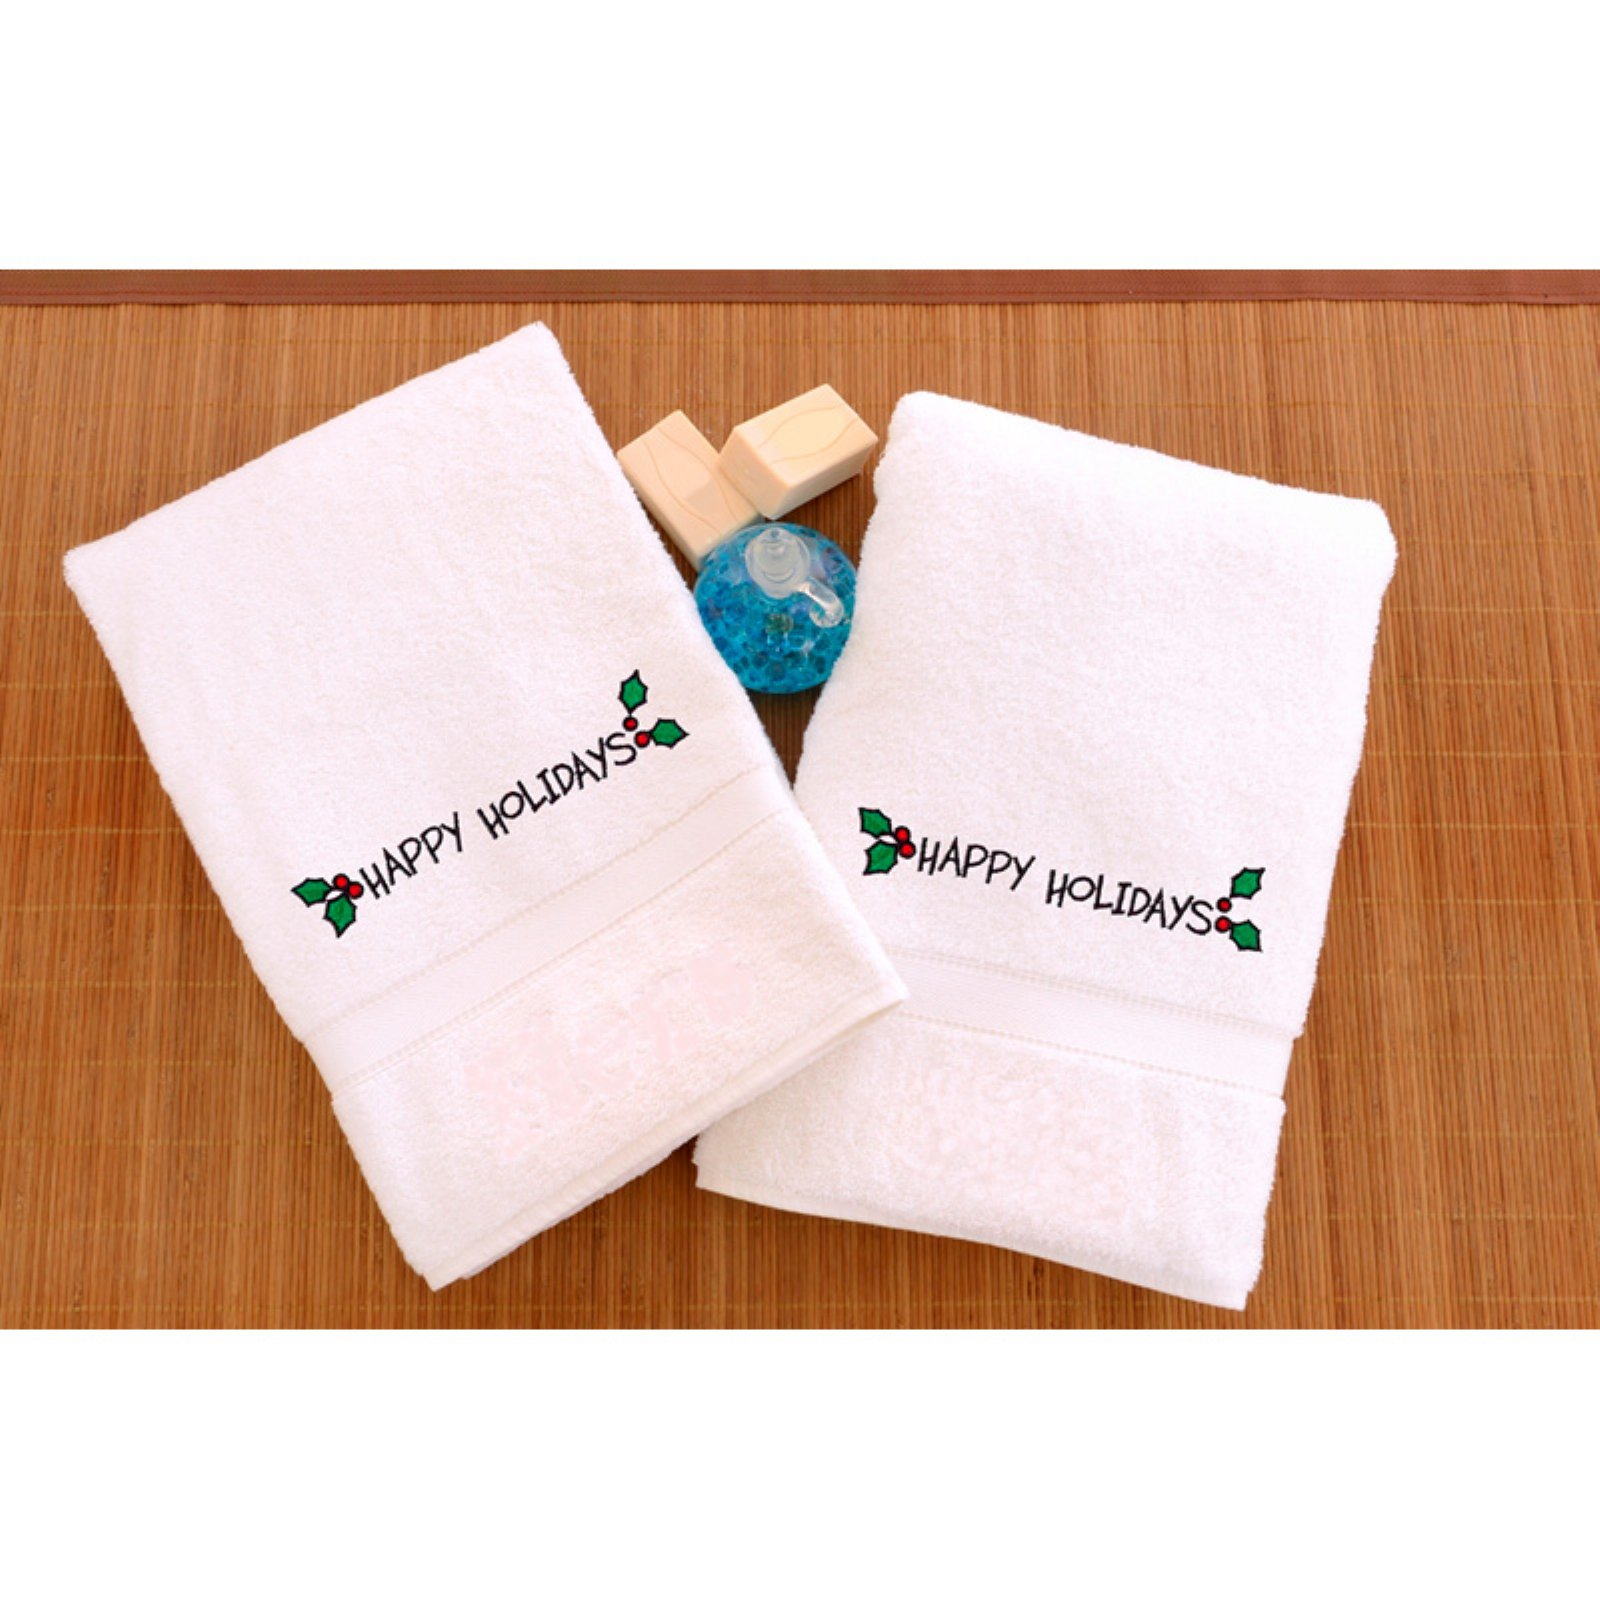 Embroidered Hand Towels with Happy Holiday with Ornament - Set of 2